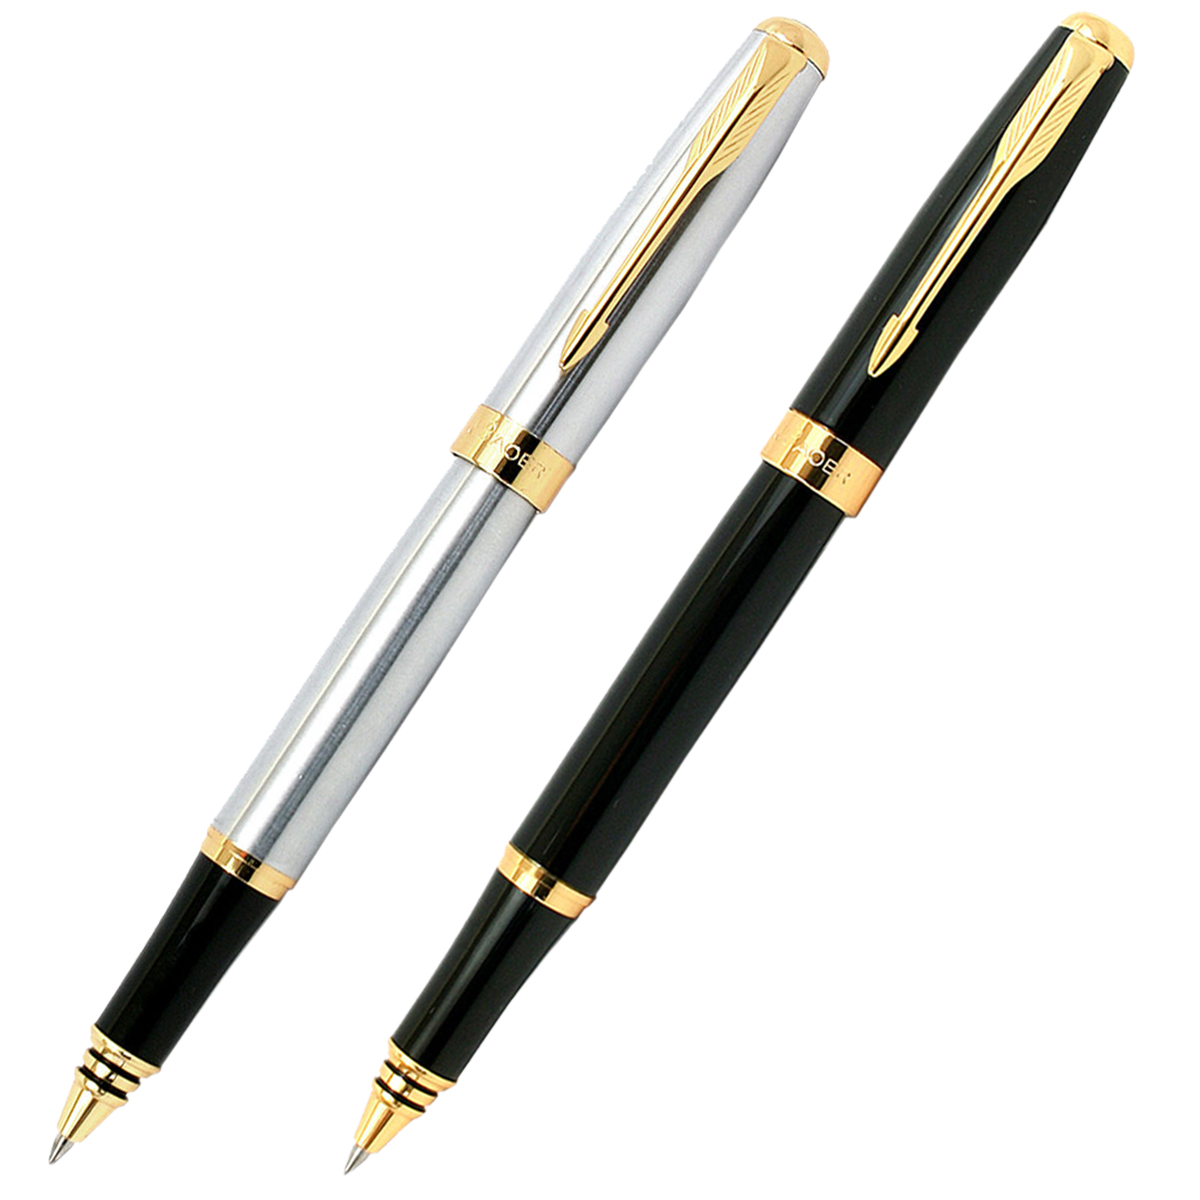 Baoer 388 High Quality Silver And Golden Clip Roller Ball Pen Business & School Supplies Hot image